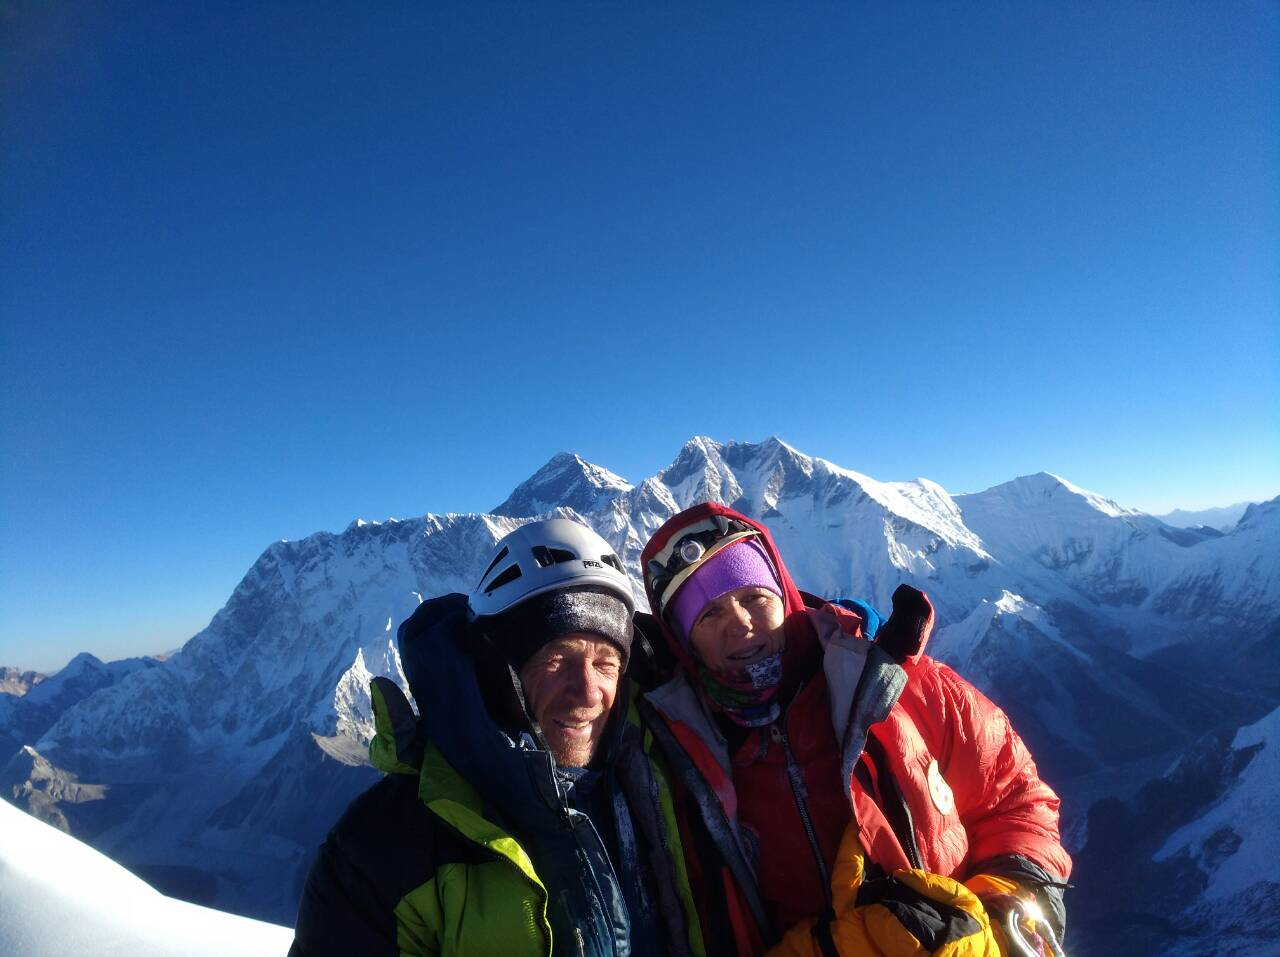 Ama Dablam Summit 6812 m